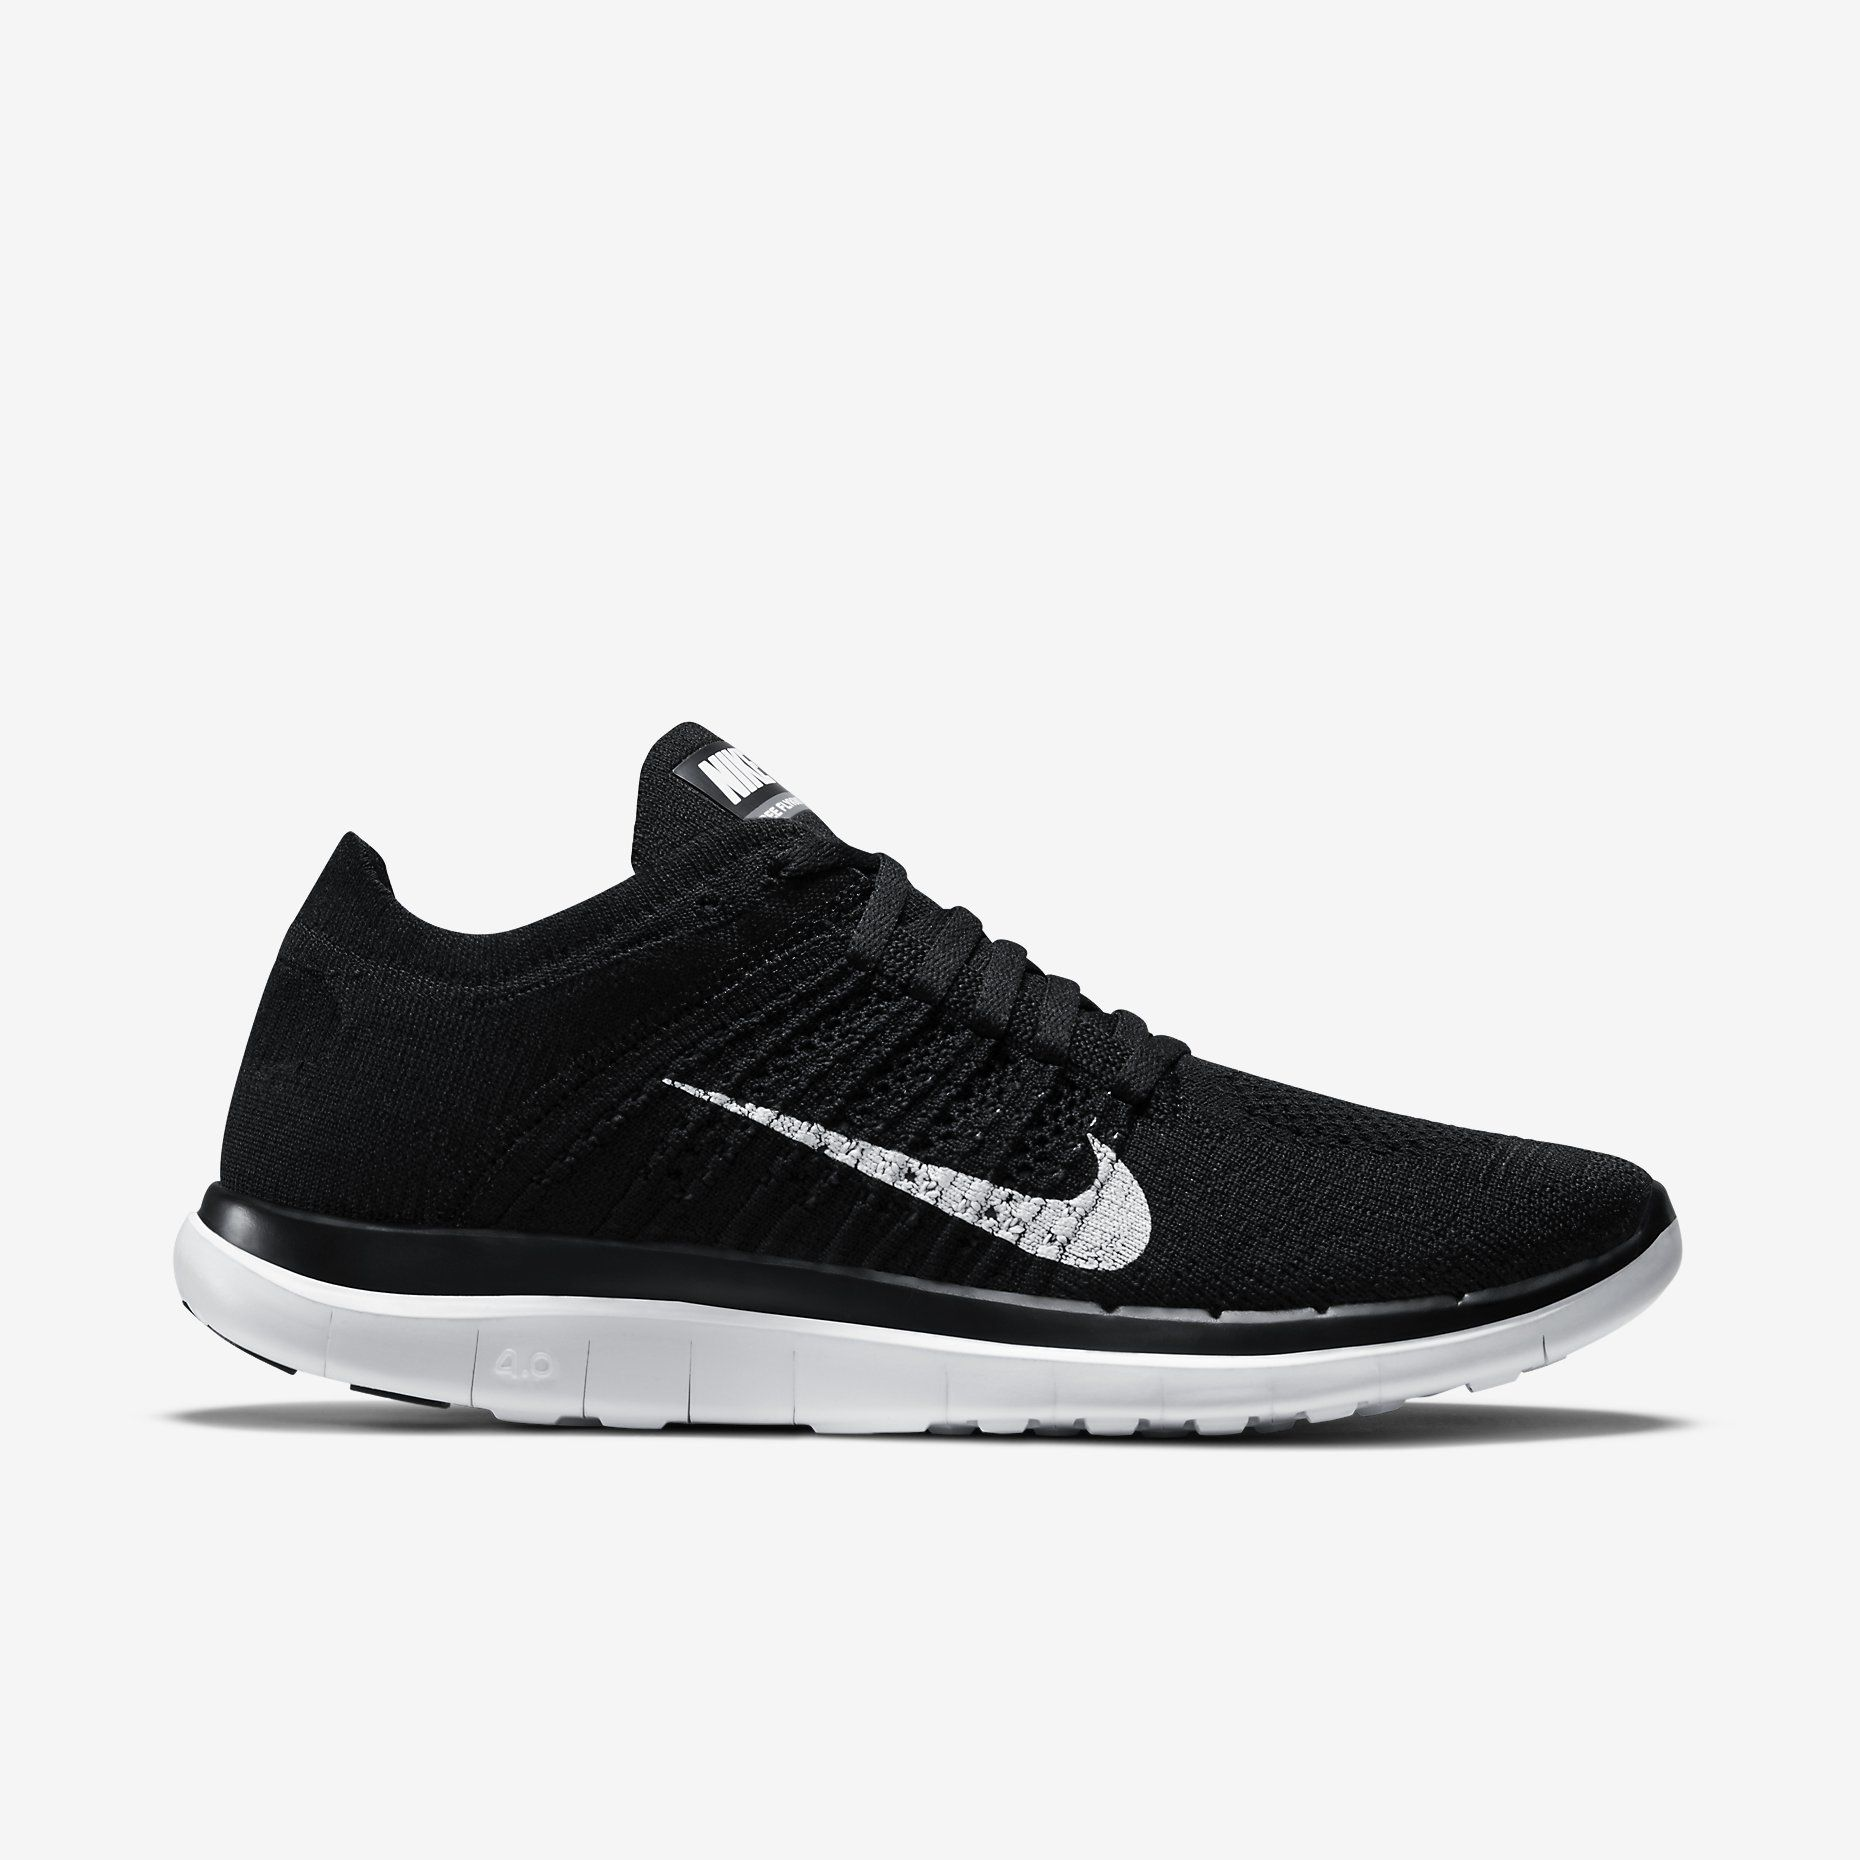 first rate d5b5b 3515b Nike Free 4.0 Flyknit Women s Running Shoe. Nike Store   Vegan Shoes    Vegan Running Shoes